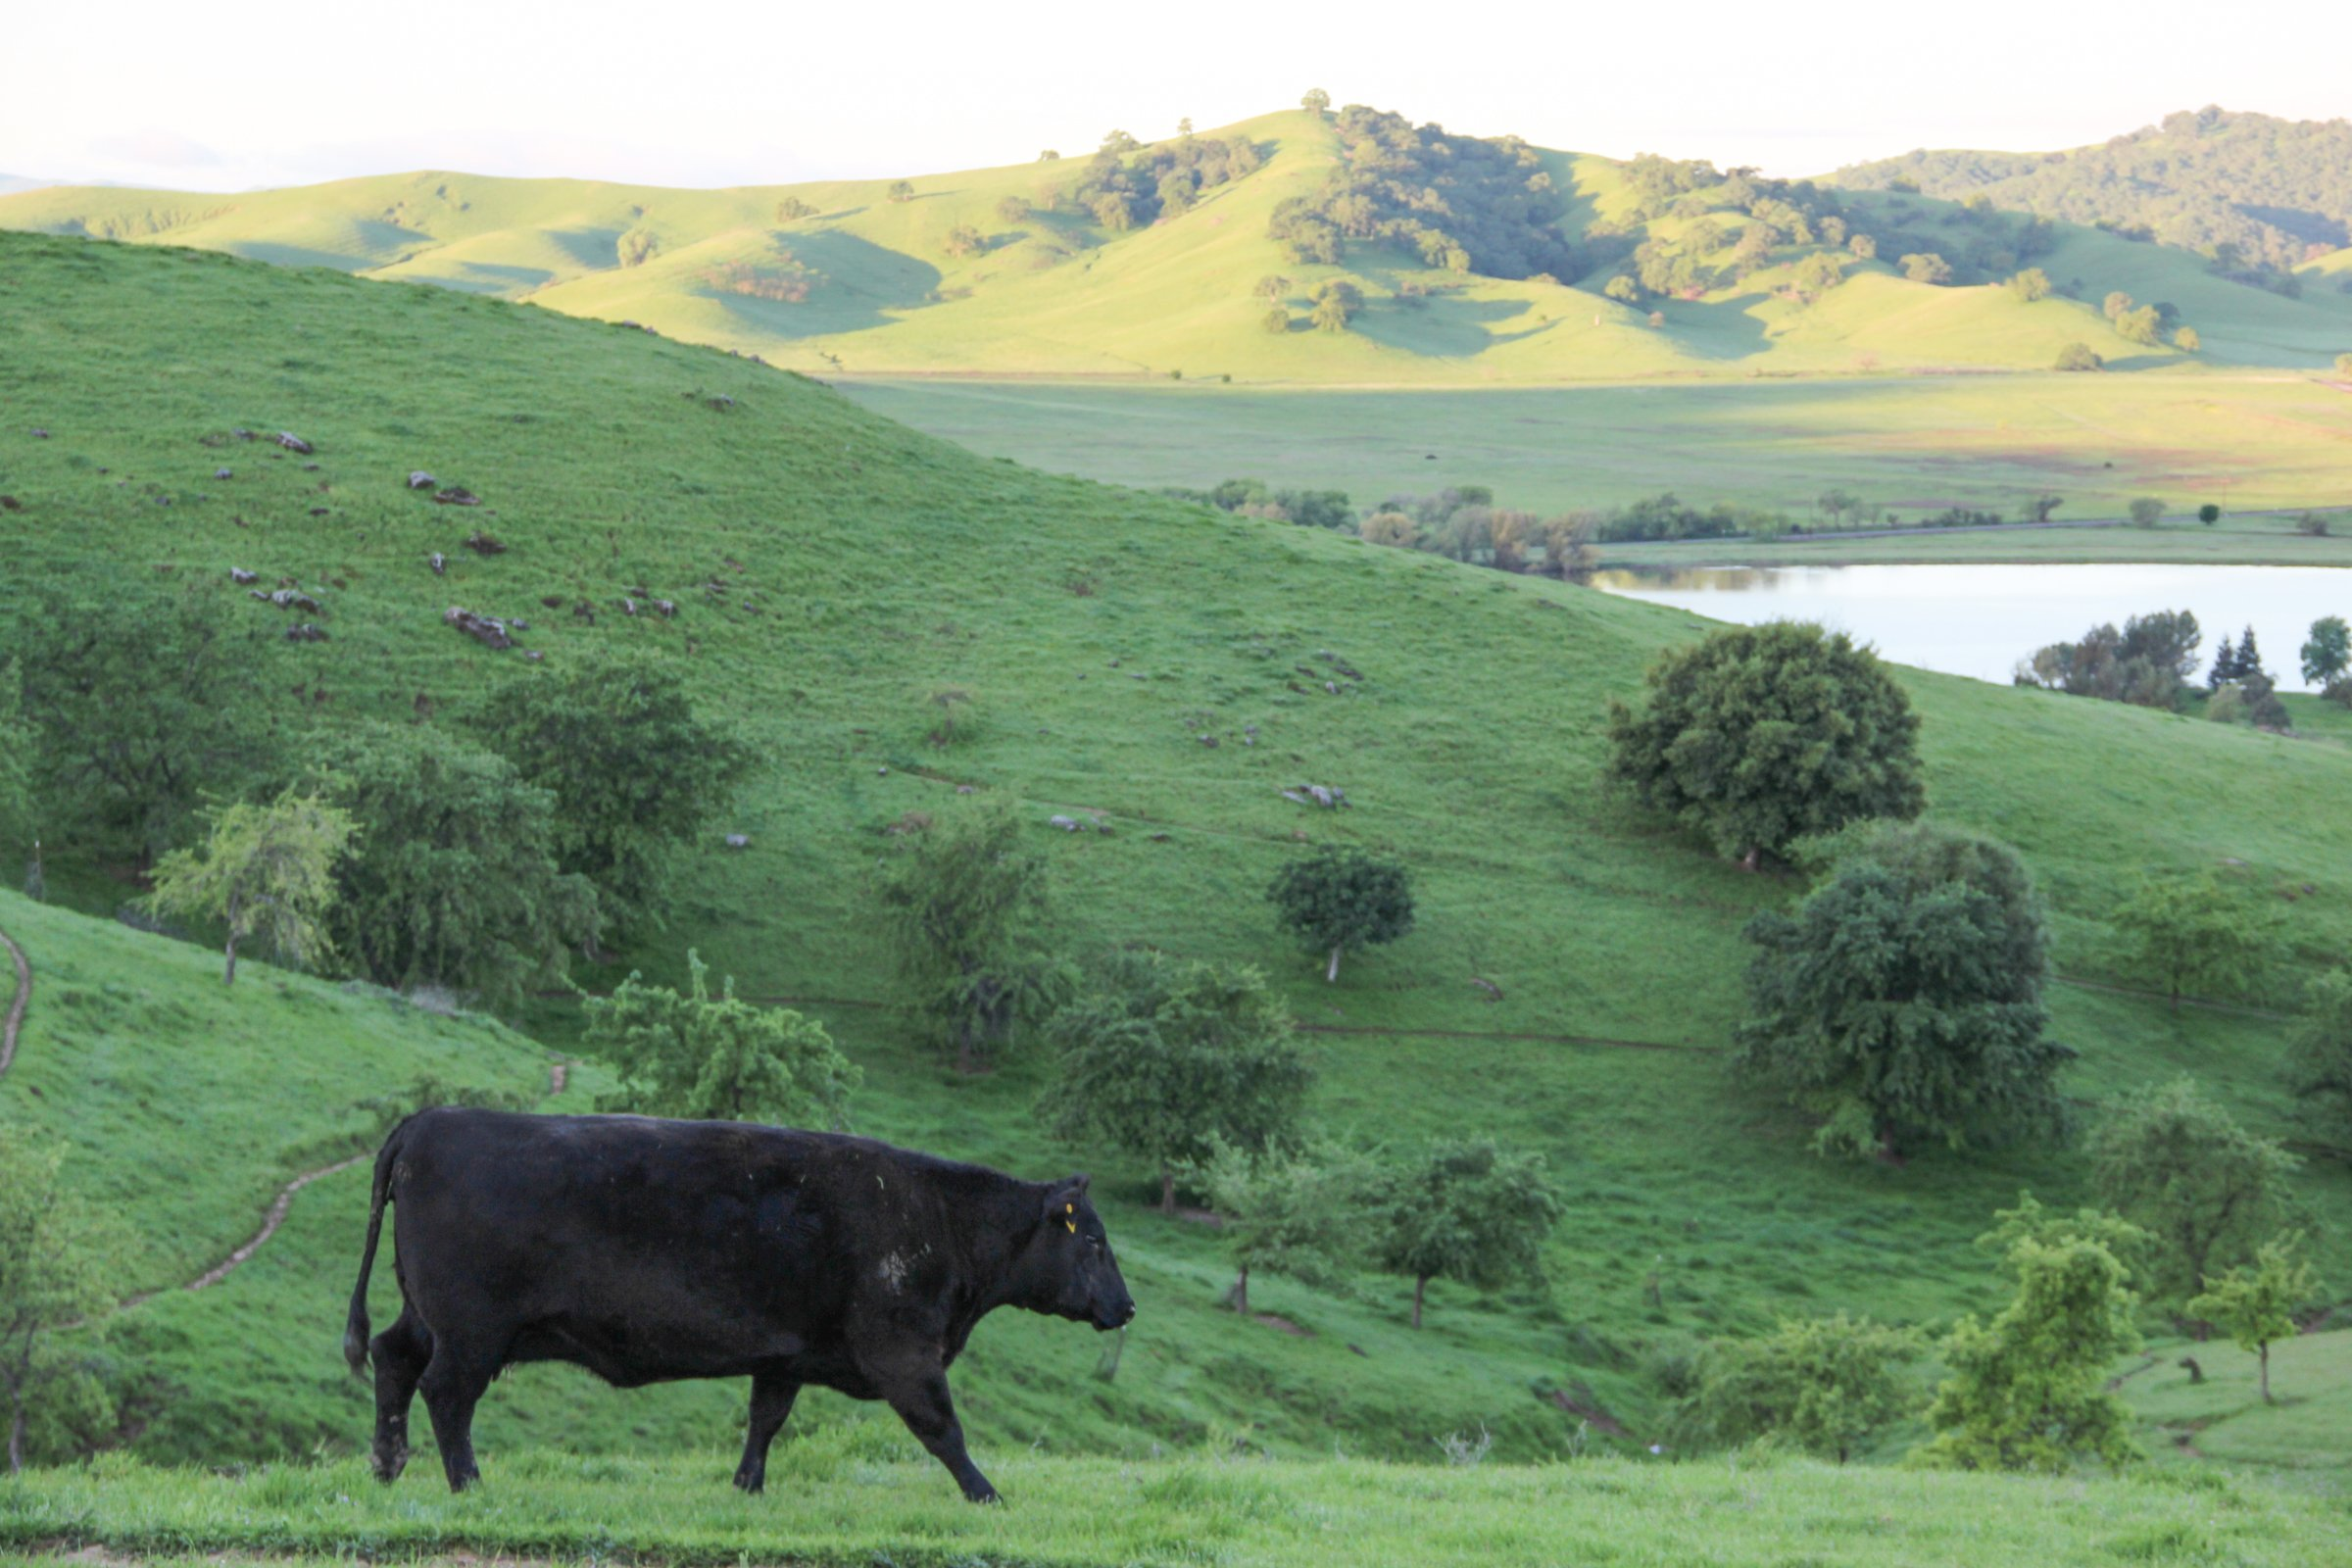 Black Cow Walking on Green Hills